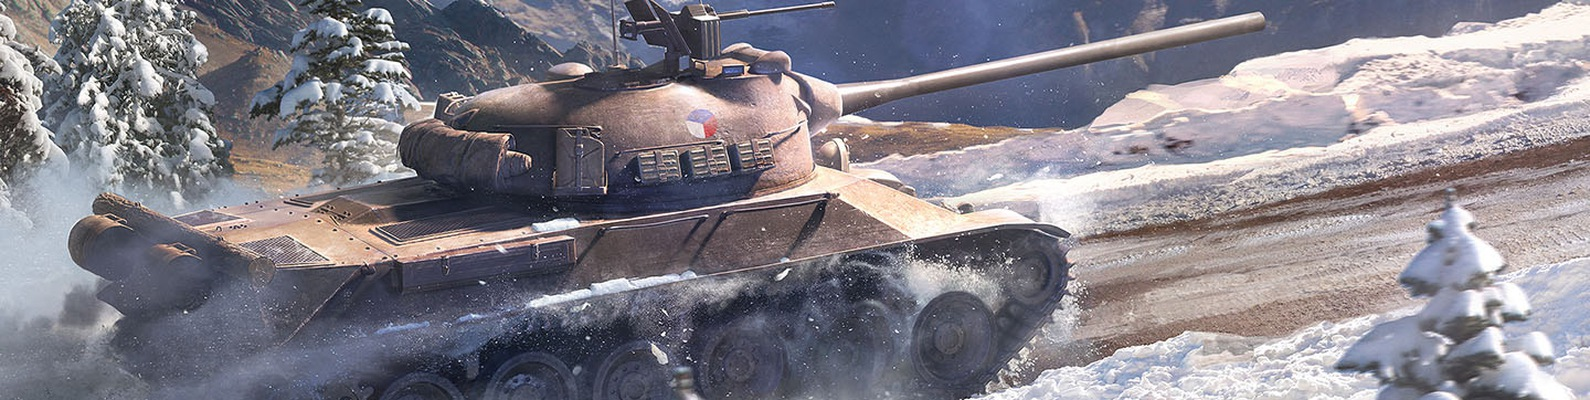 Сделать world of tanks сайт